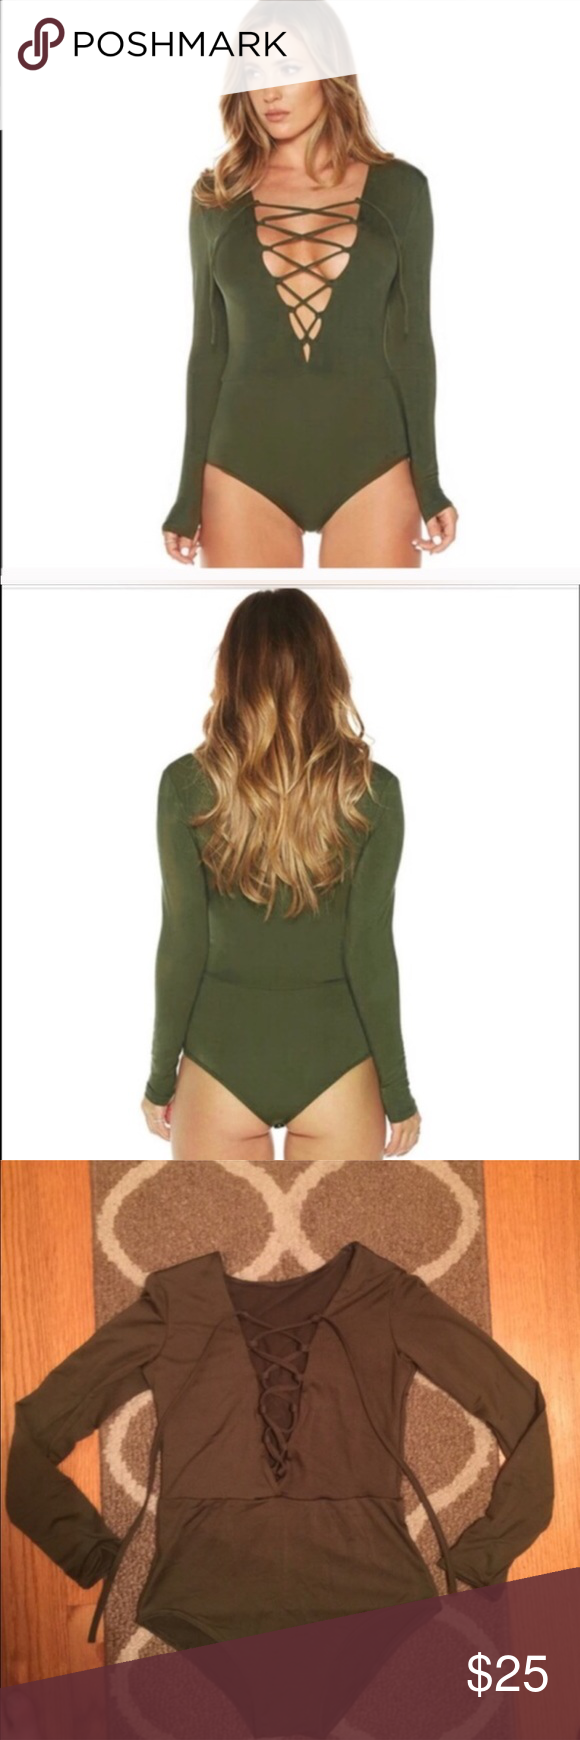 Lace me up bodysuit Brand new army green color bodysuit size S. Material is stretchy and shiny and seems like a mix of spandex as well as other fabrics. No trades. BRAND FOR EXPOSURE Nasty Gal Tops Blouses